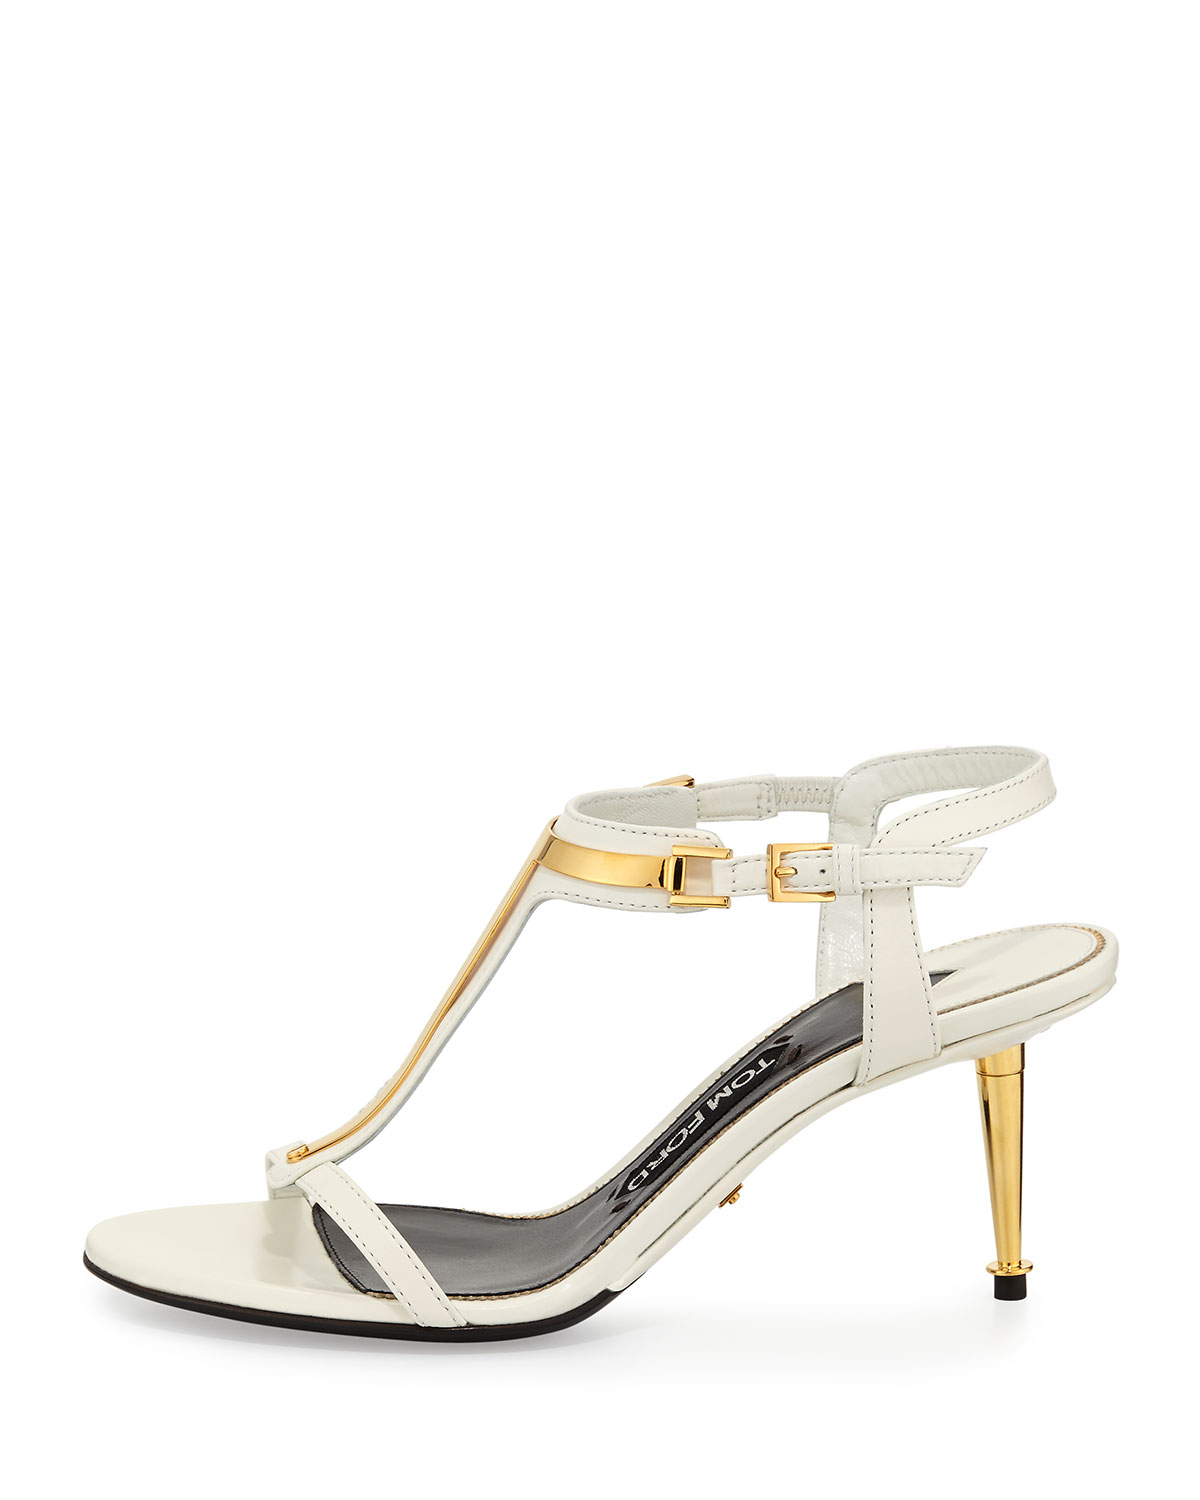 848dec8ad669 Lyst - Tom Ford Leather T-bar Sandal in White